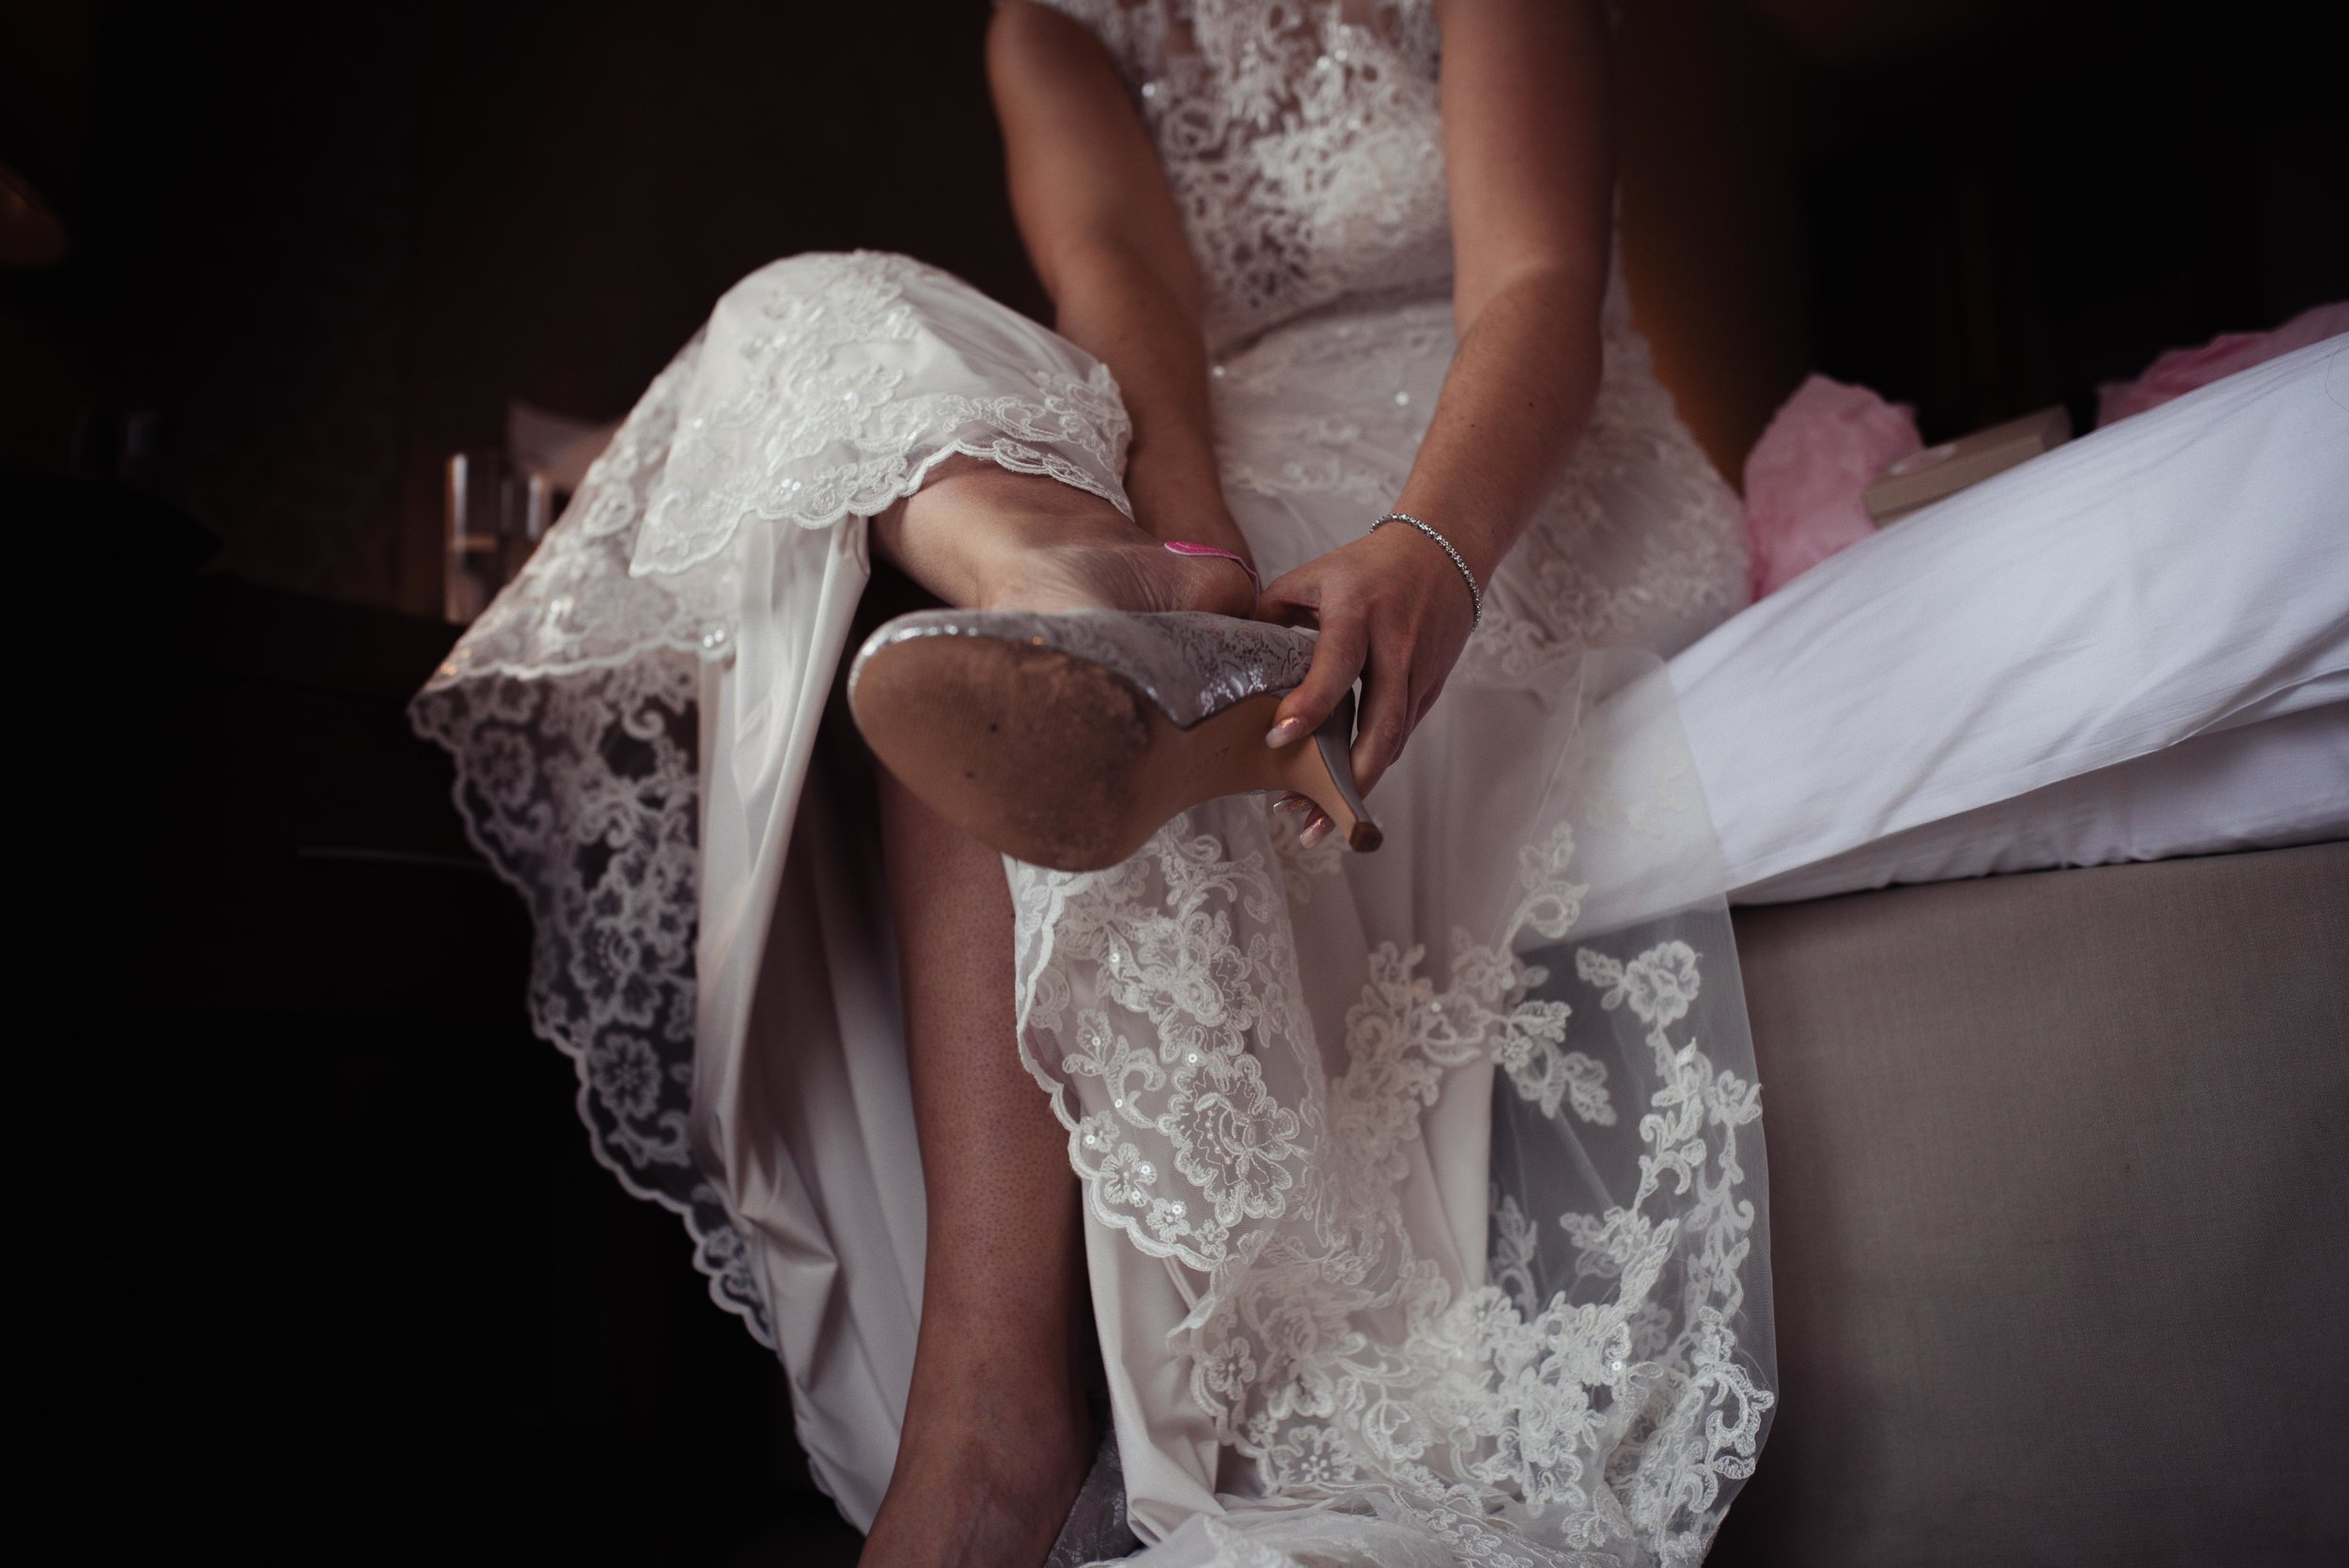 The bride sits on the side of the bed to put her wedding shoes on